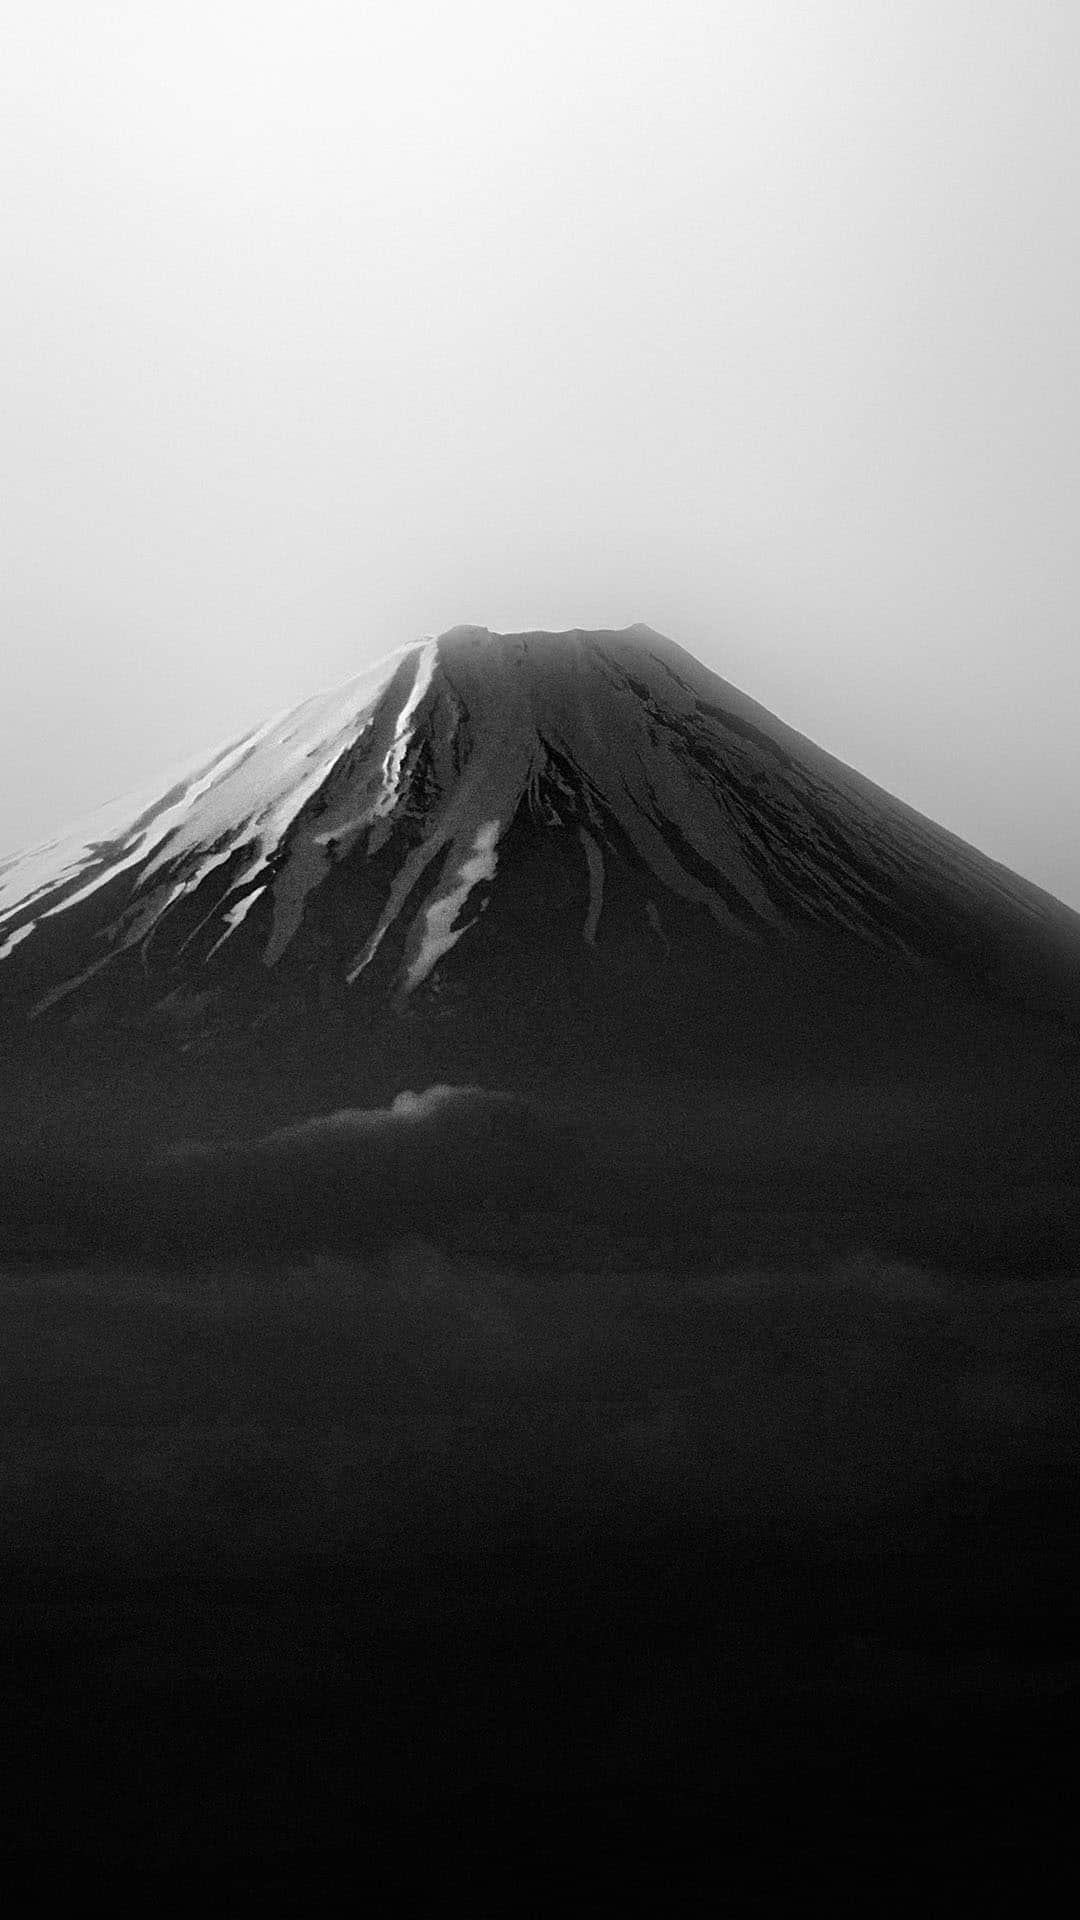 Mount Fuji Japan Black White Android Wallpaper